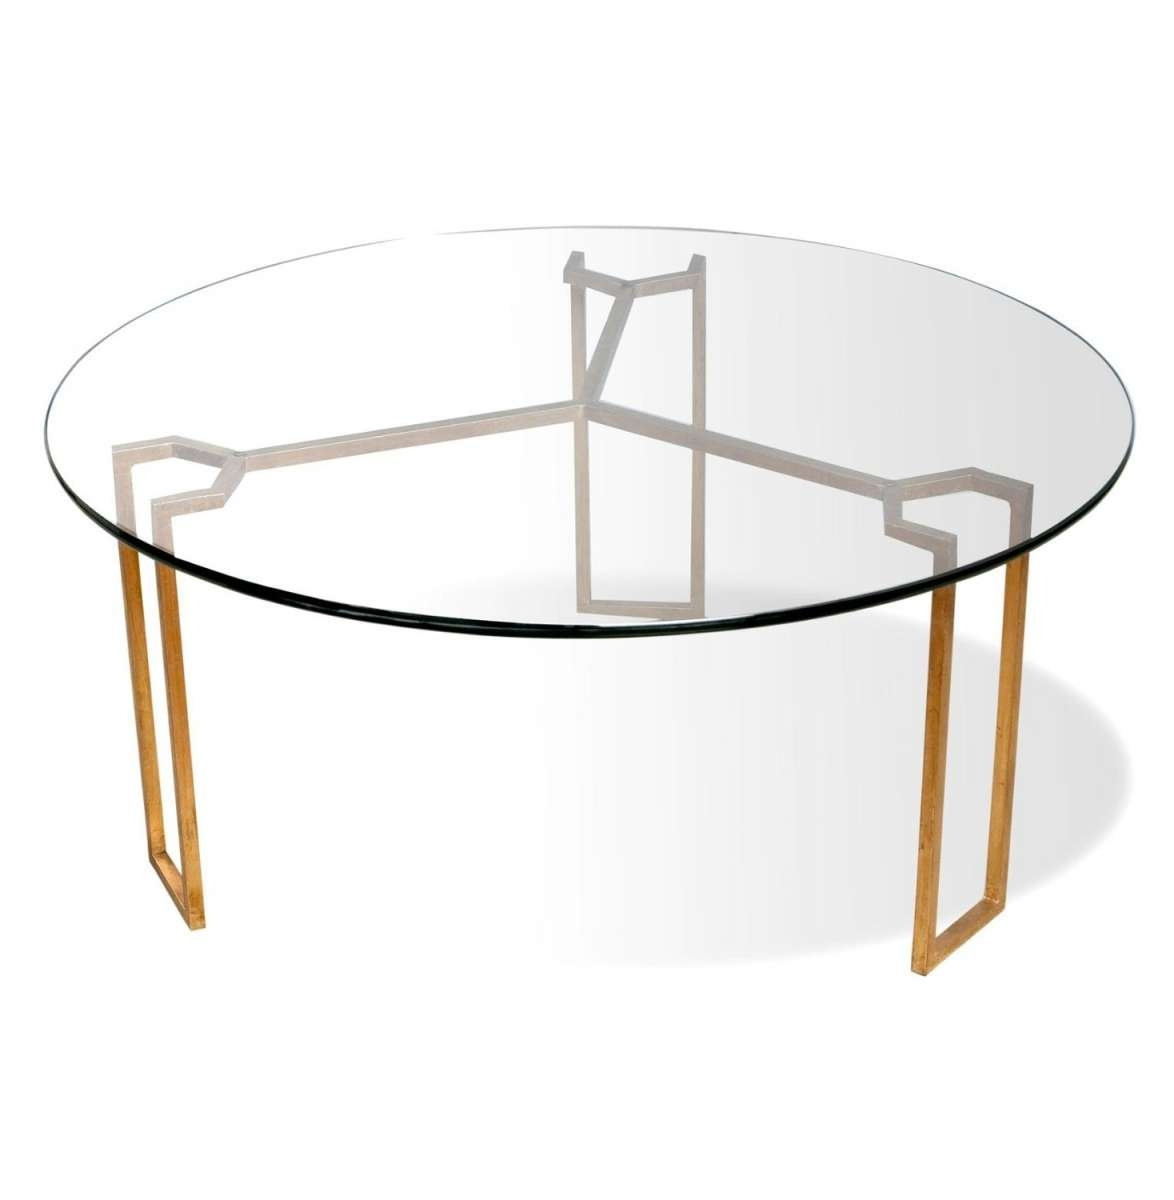 Well Liked Circular Glass Coffee Tables Throughout Small Round Coffee Tables (View 12 of 20)